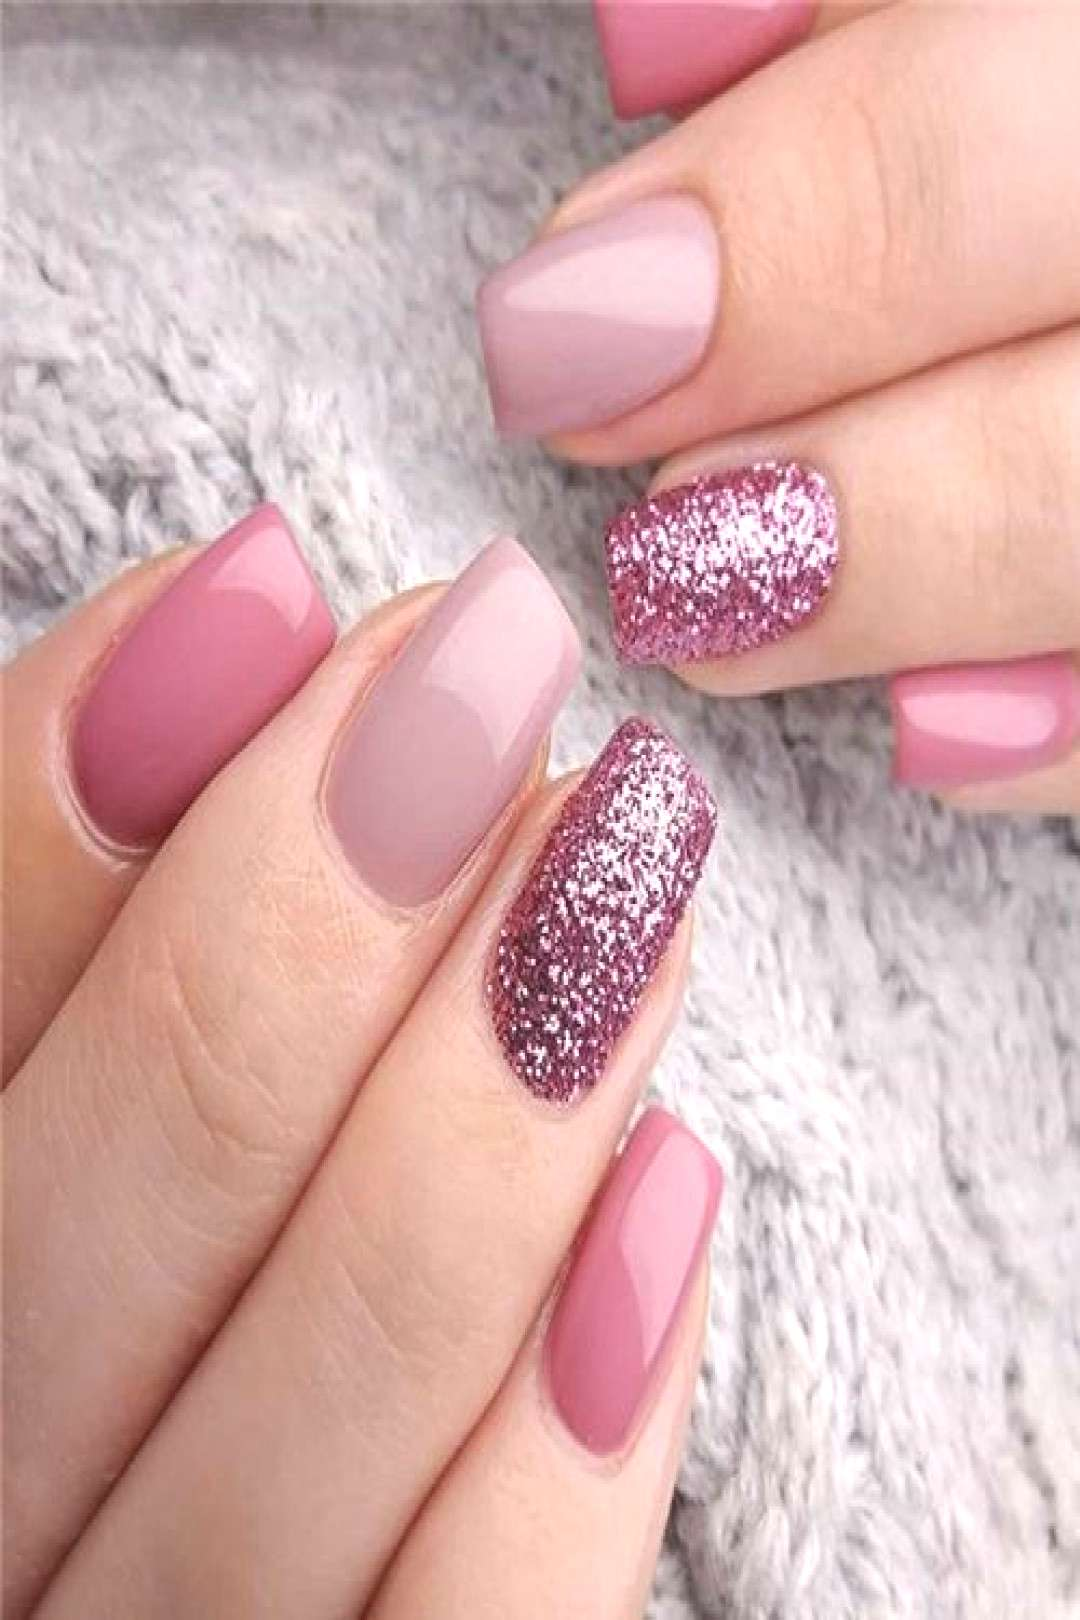 40+ Gorgeous Gel Nail Designs for Spring 2020